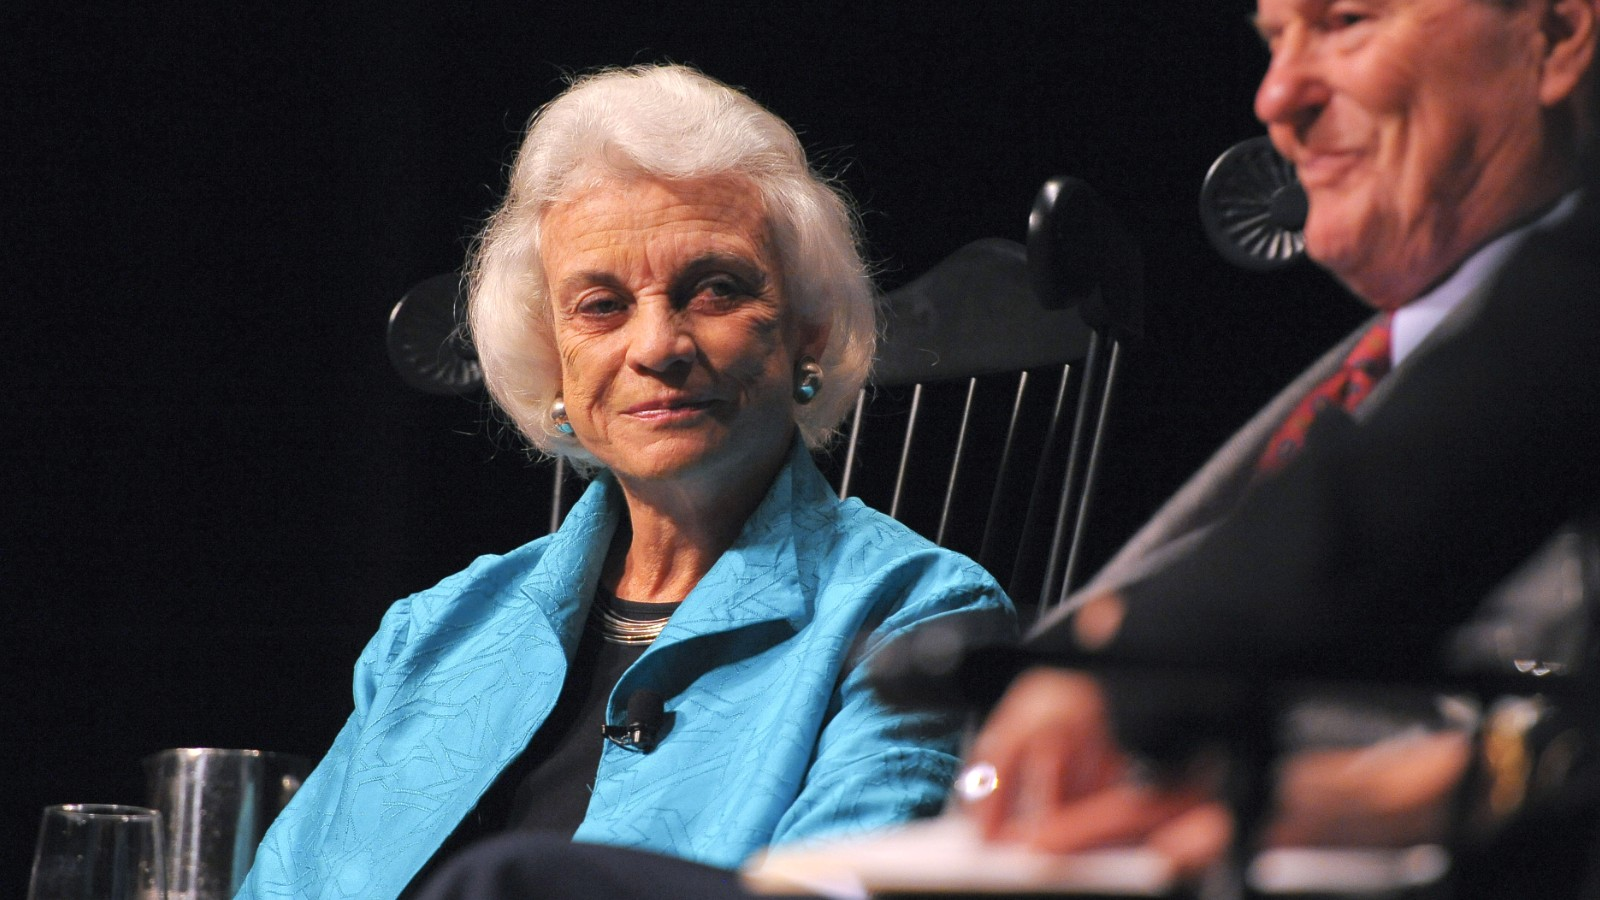 Sandra Day OConnor was the first woman appointed to the US Supreme Court Learn more at Biographycom